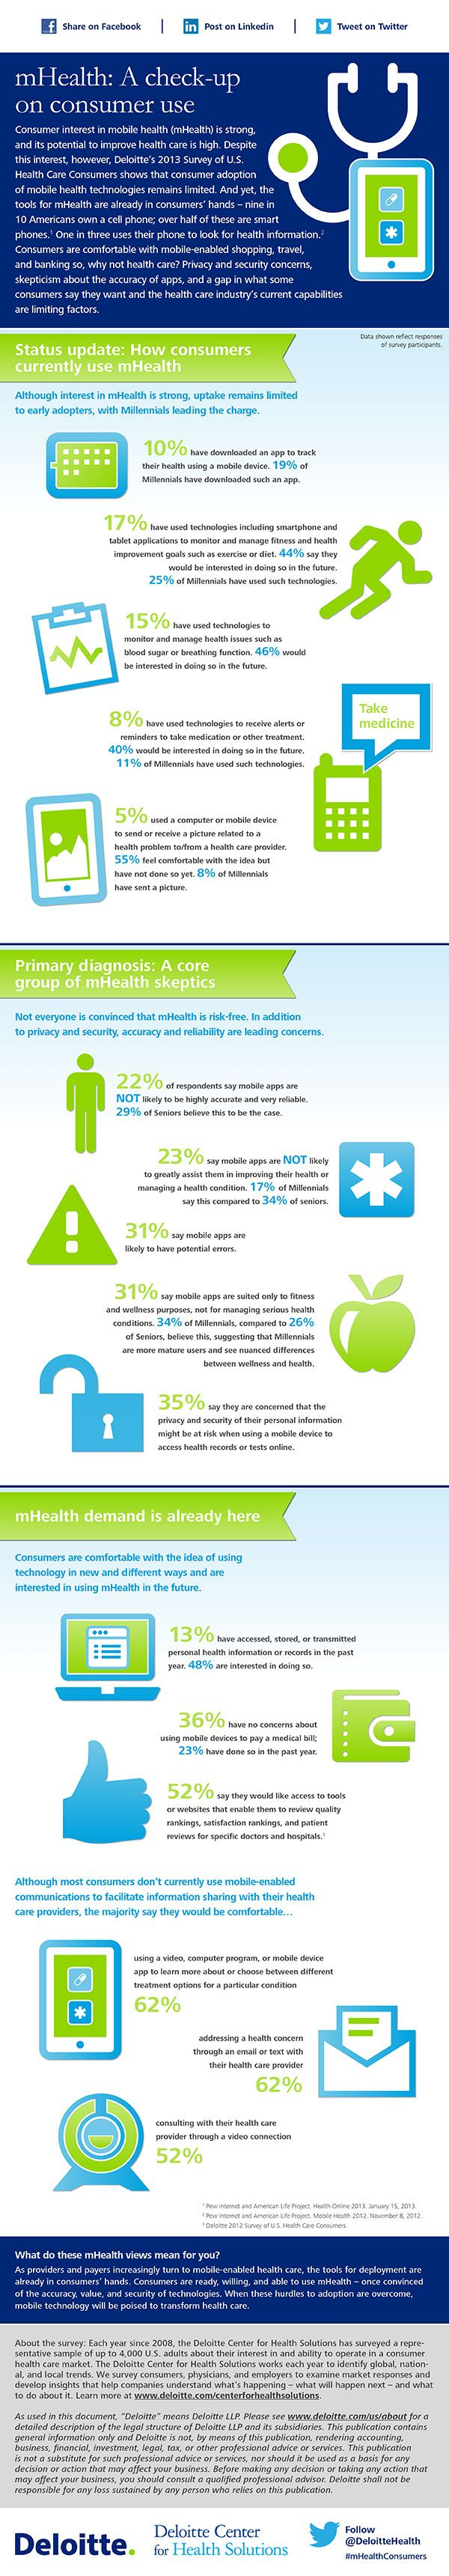 Infographic: mHealth – A Check-Up On Consumer Use